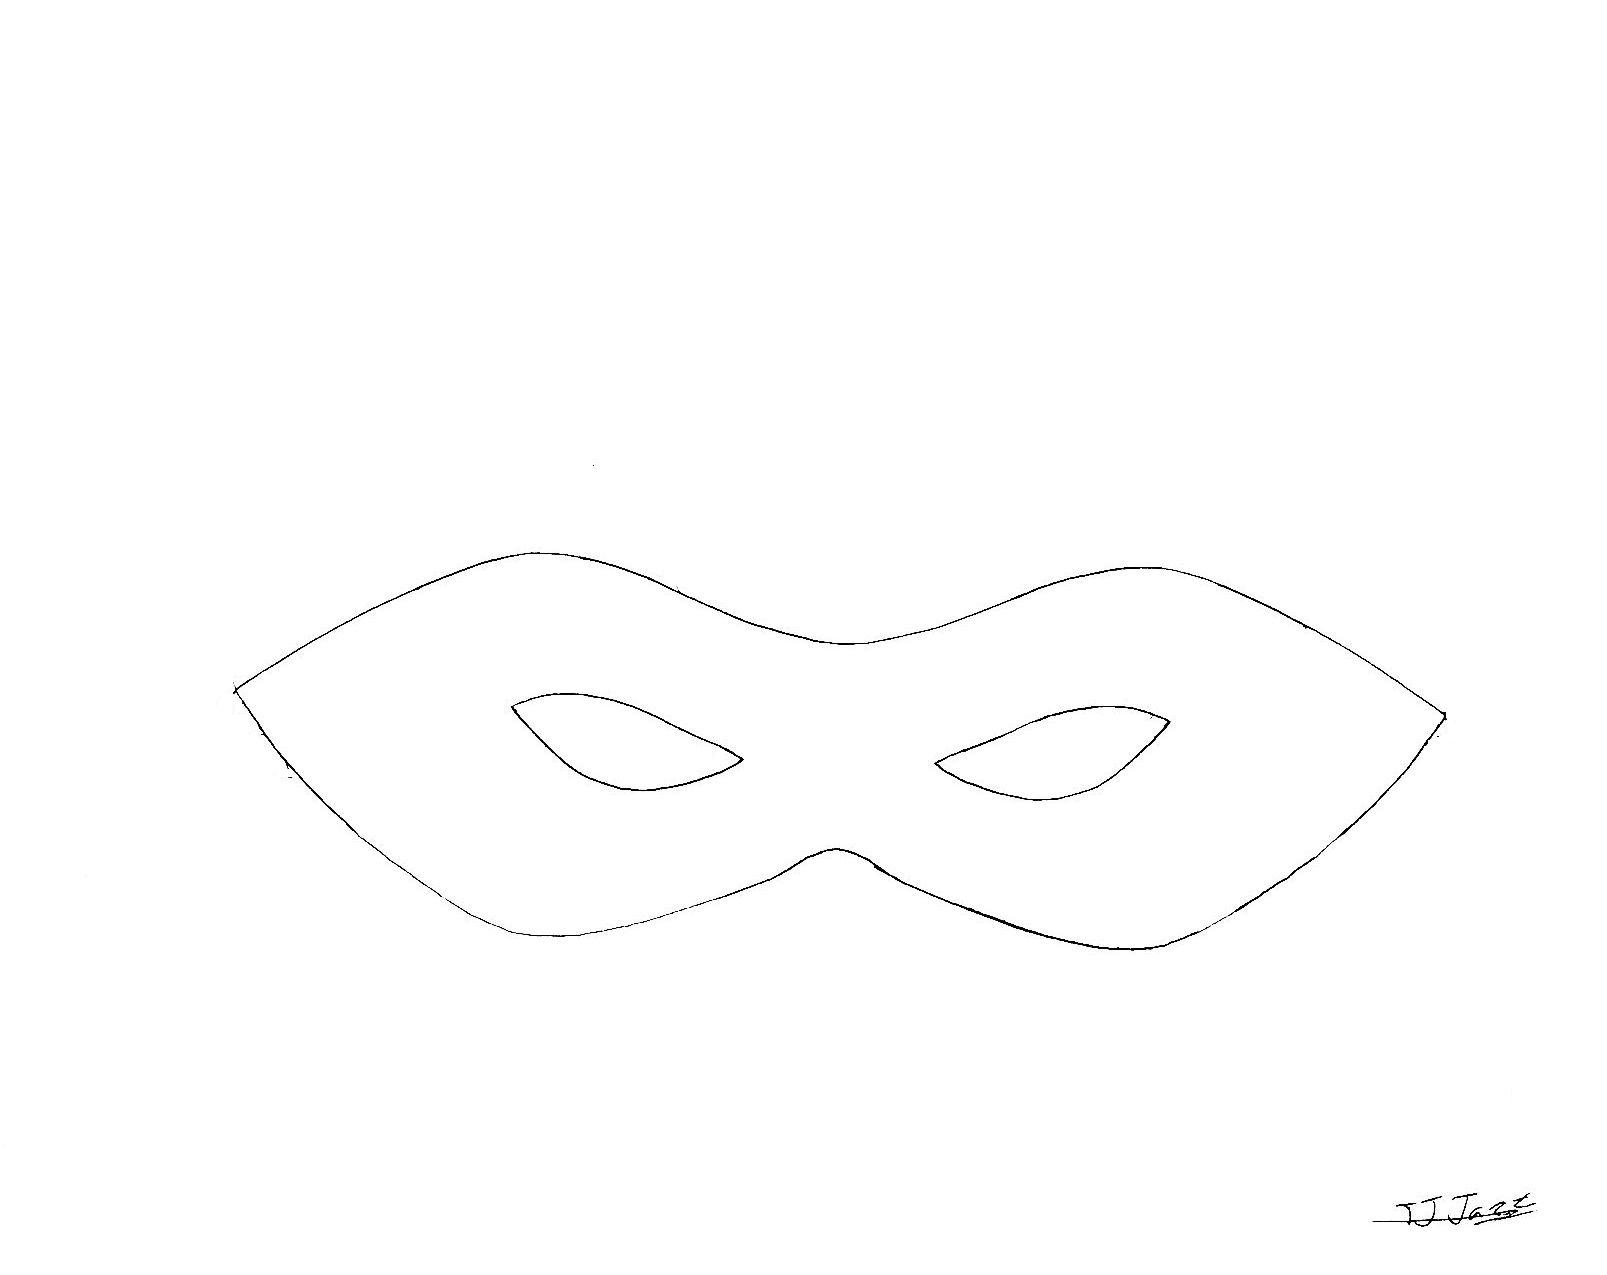 Superhero Mask Template by TJ-Jazz on DeviantArt